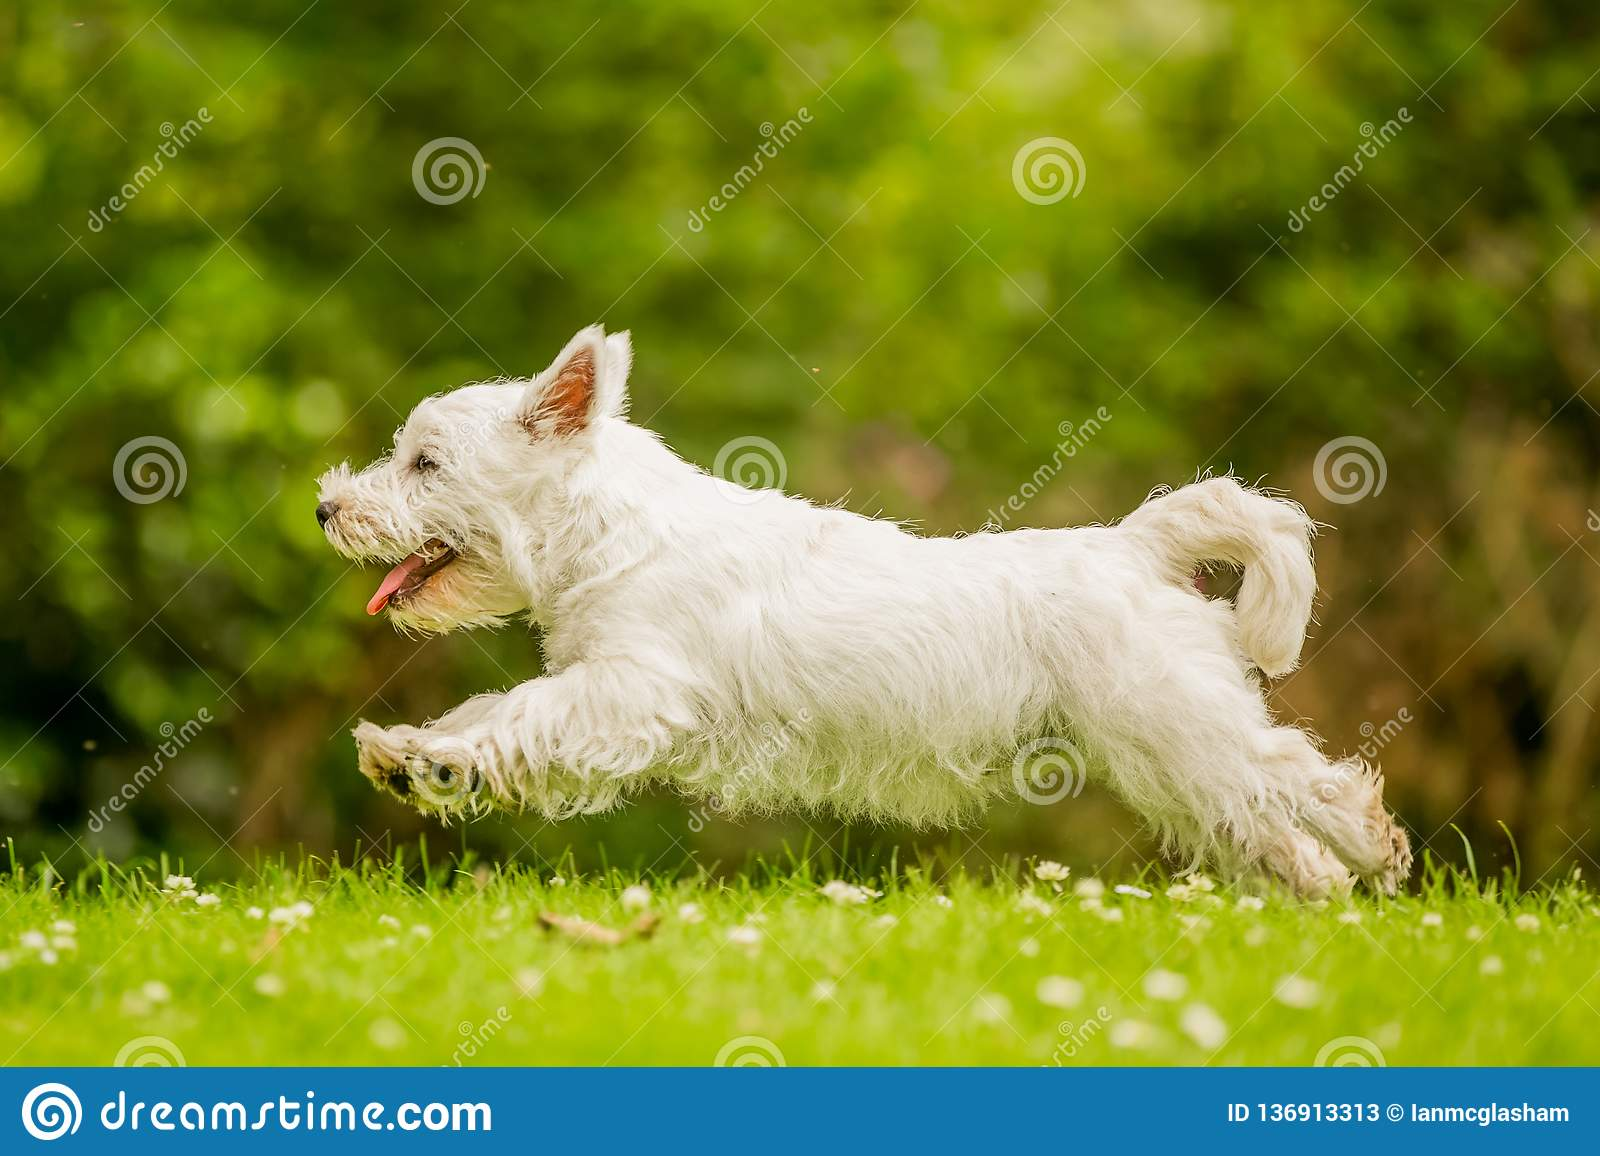 West Highland White Terrier jumping over grass with daisies.